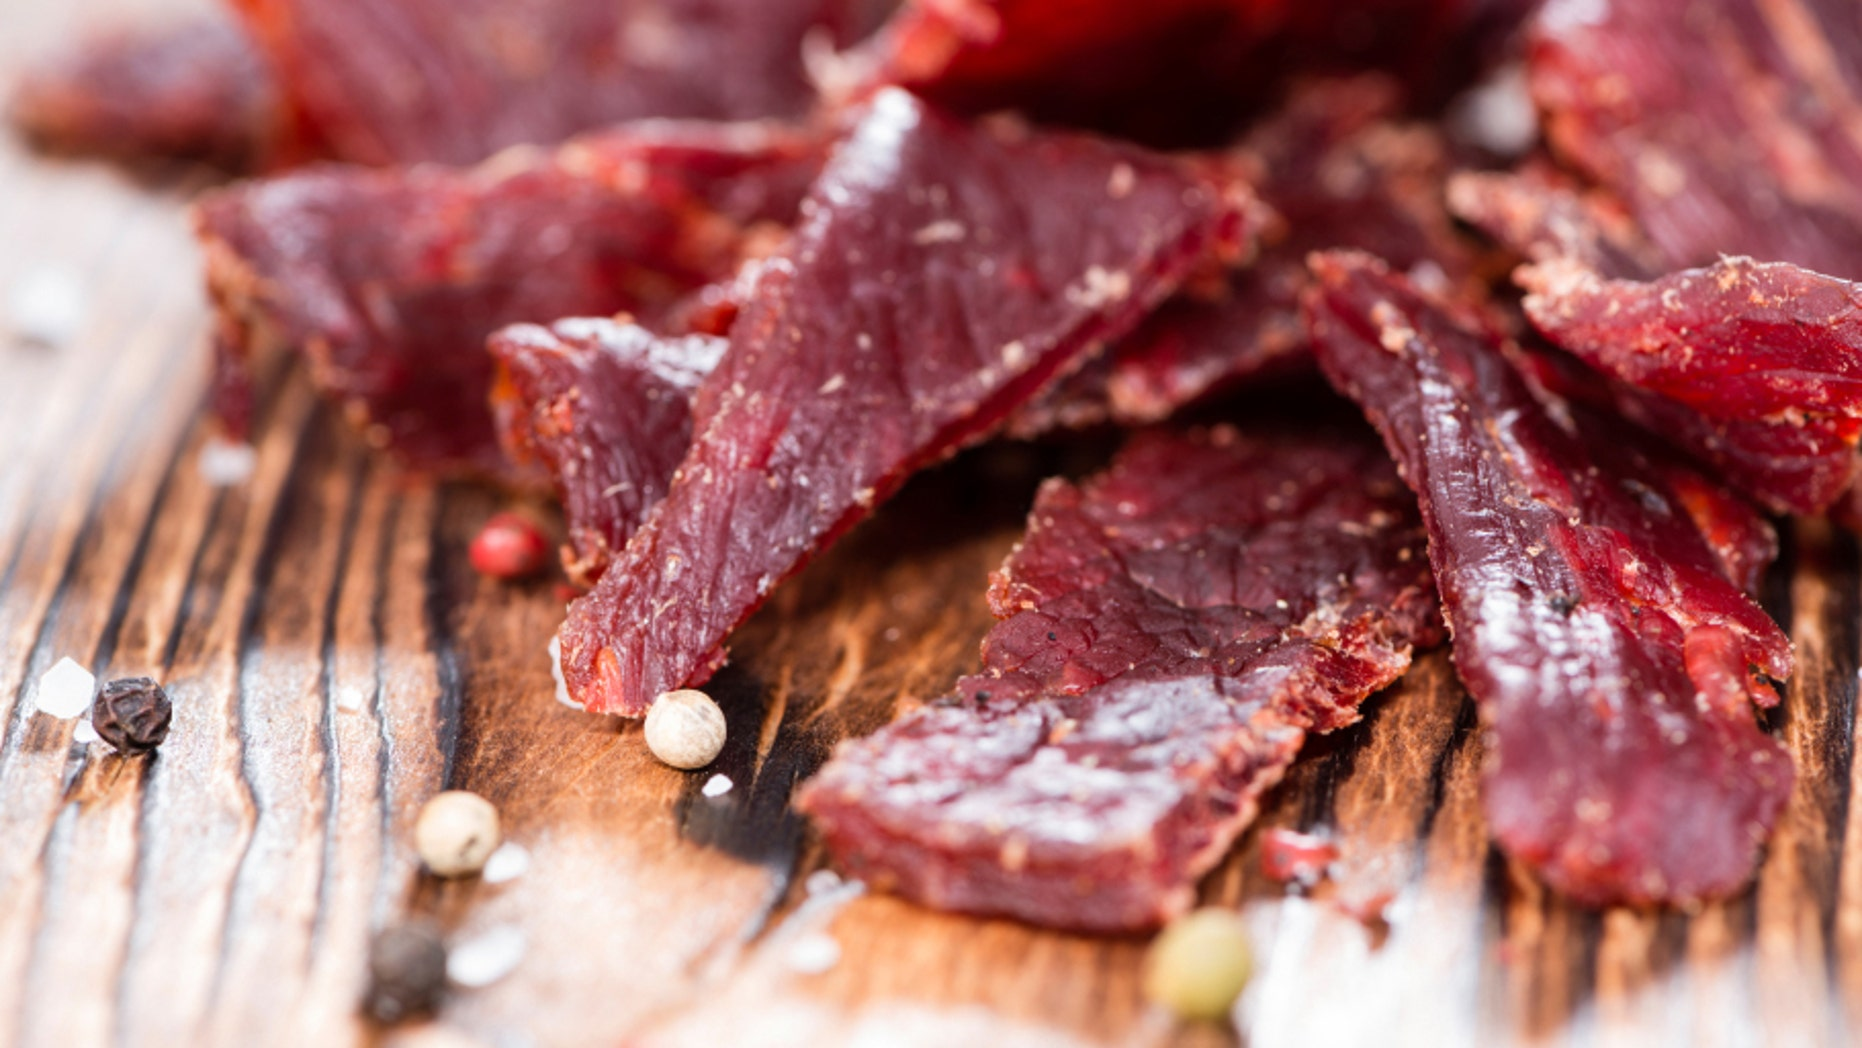 Portion of Beef Jerky on vintage wooden background